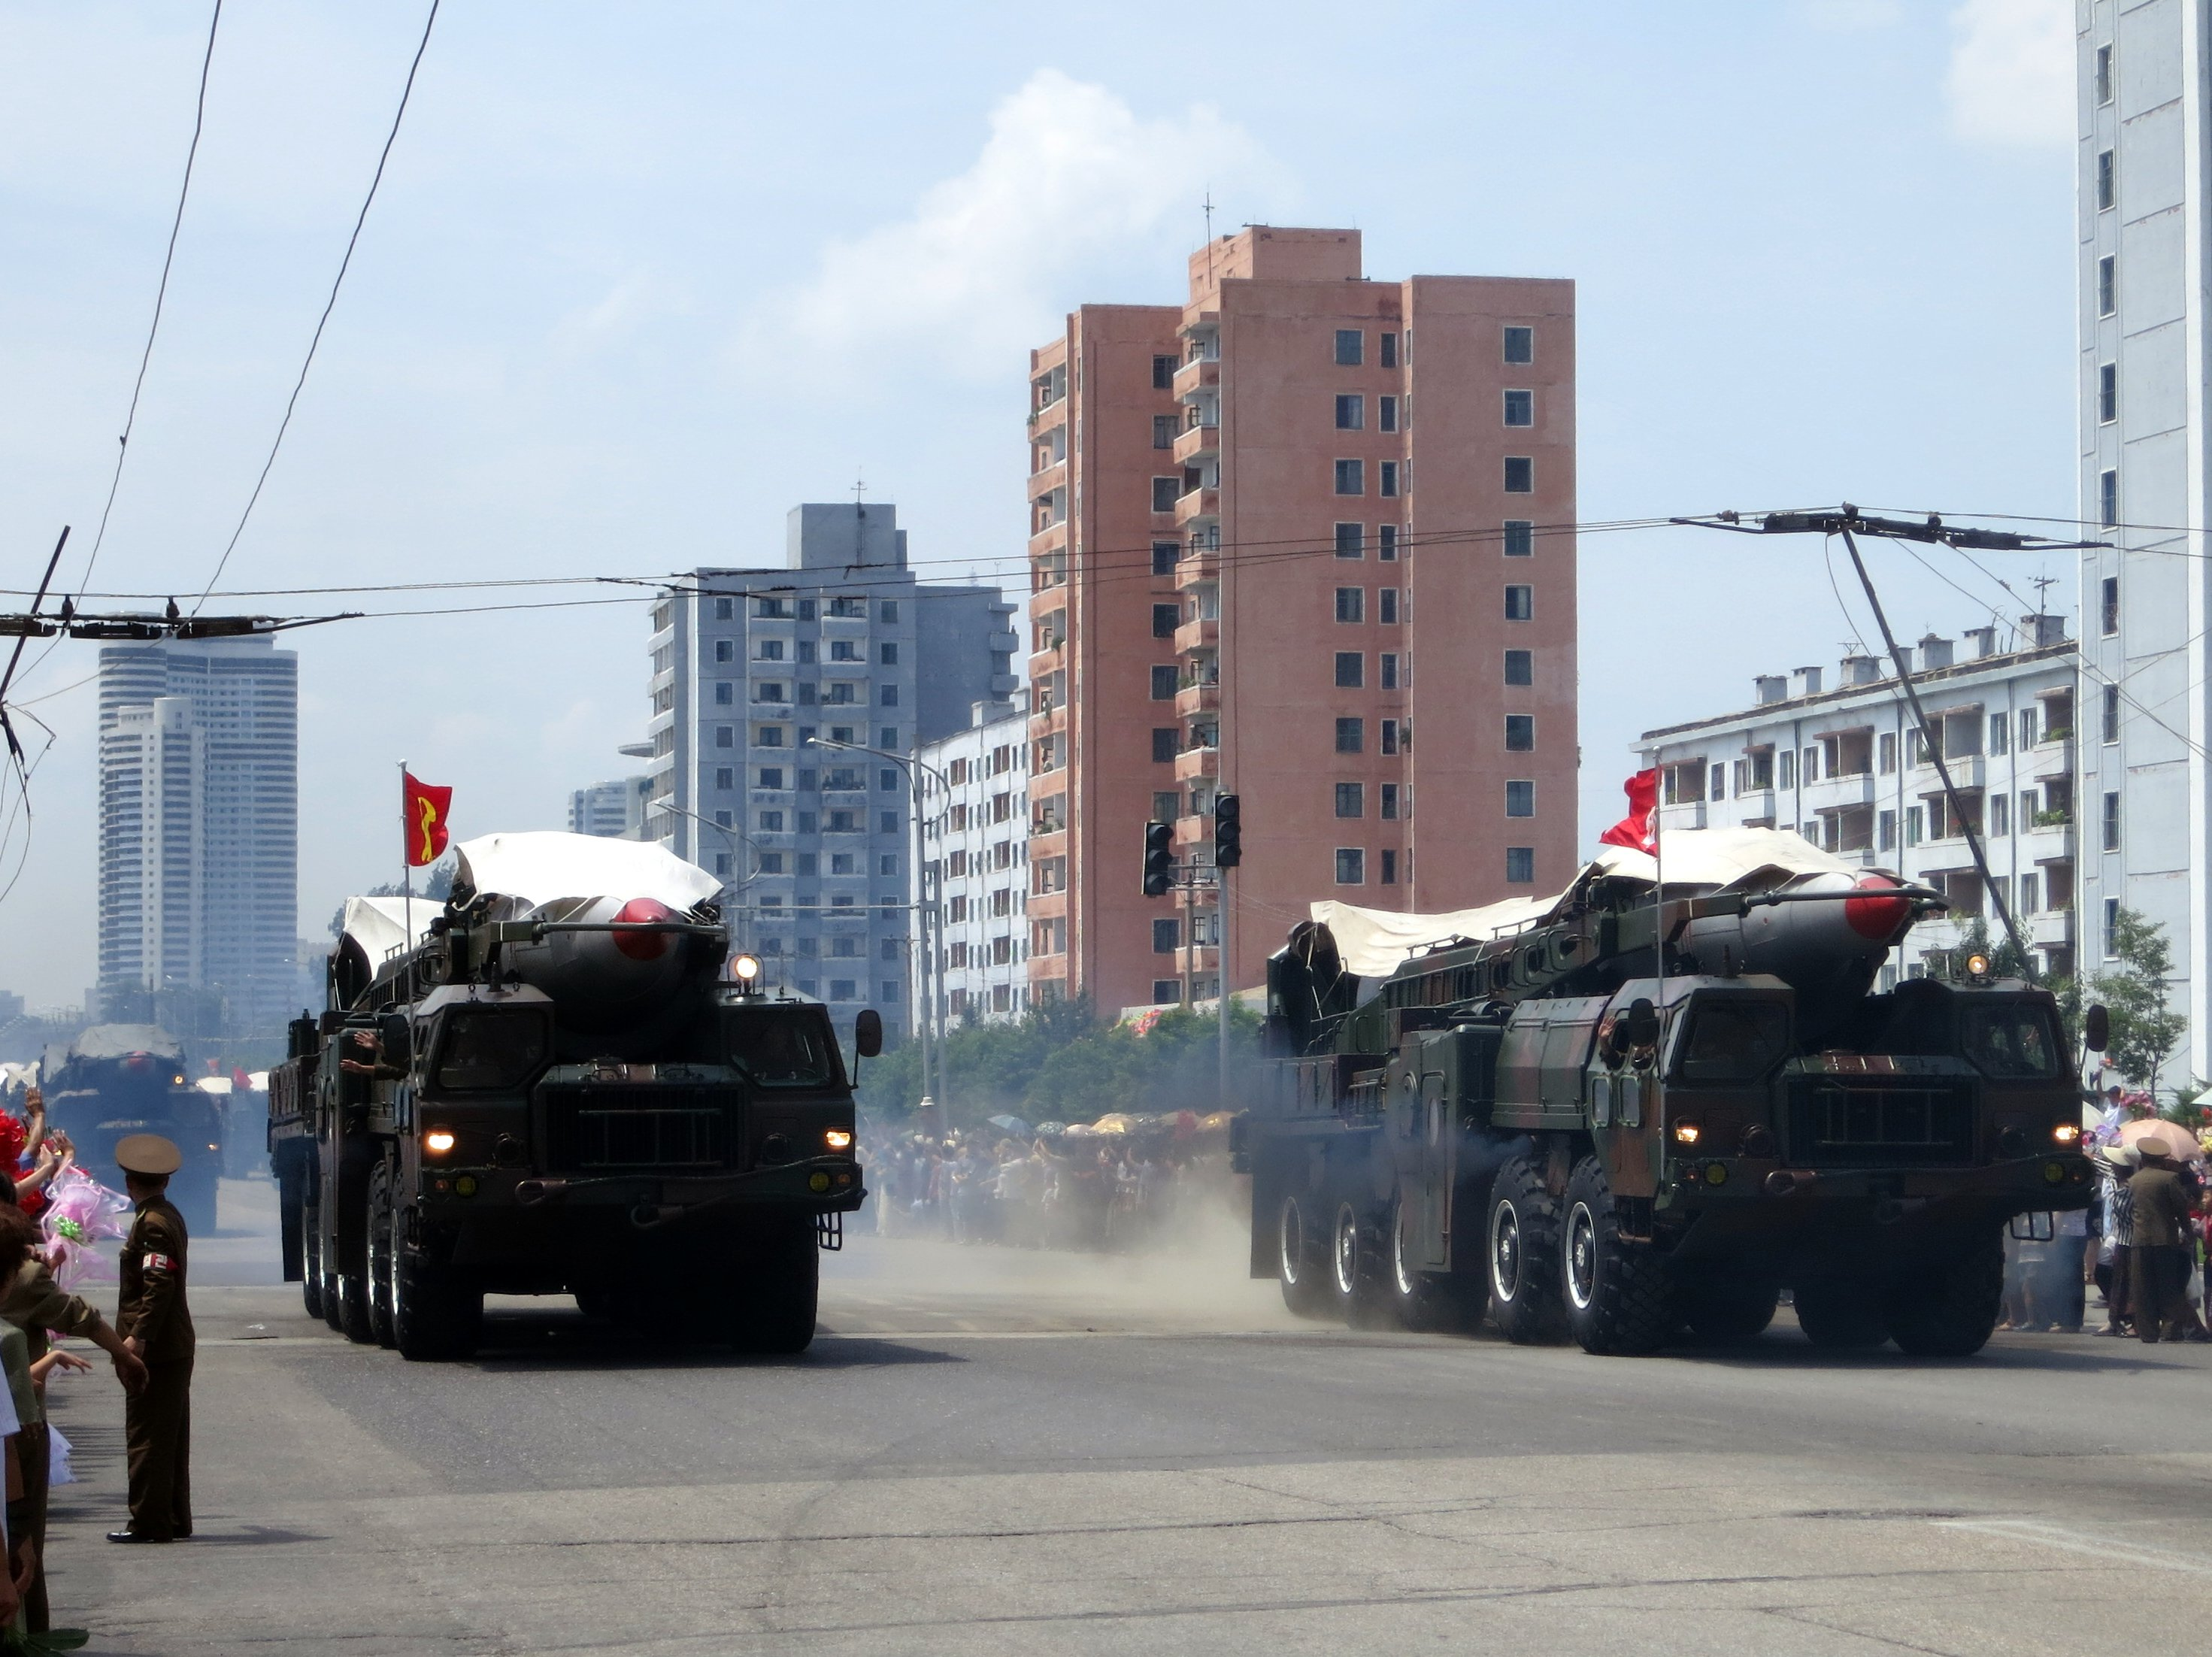 https://upload.wikimedia.org/wikipedia/commons/1/1c/North_Korea%27s_ballistic_missile_-_North_Korea_Victory_Day-2013_02.jpg